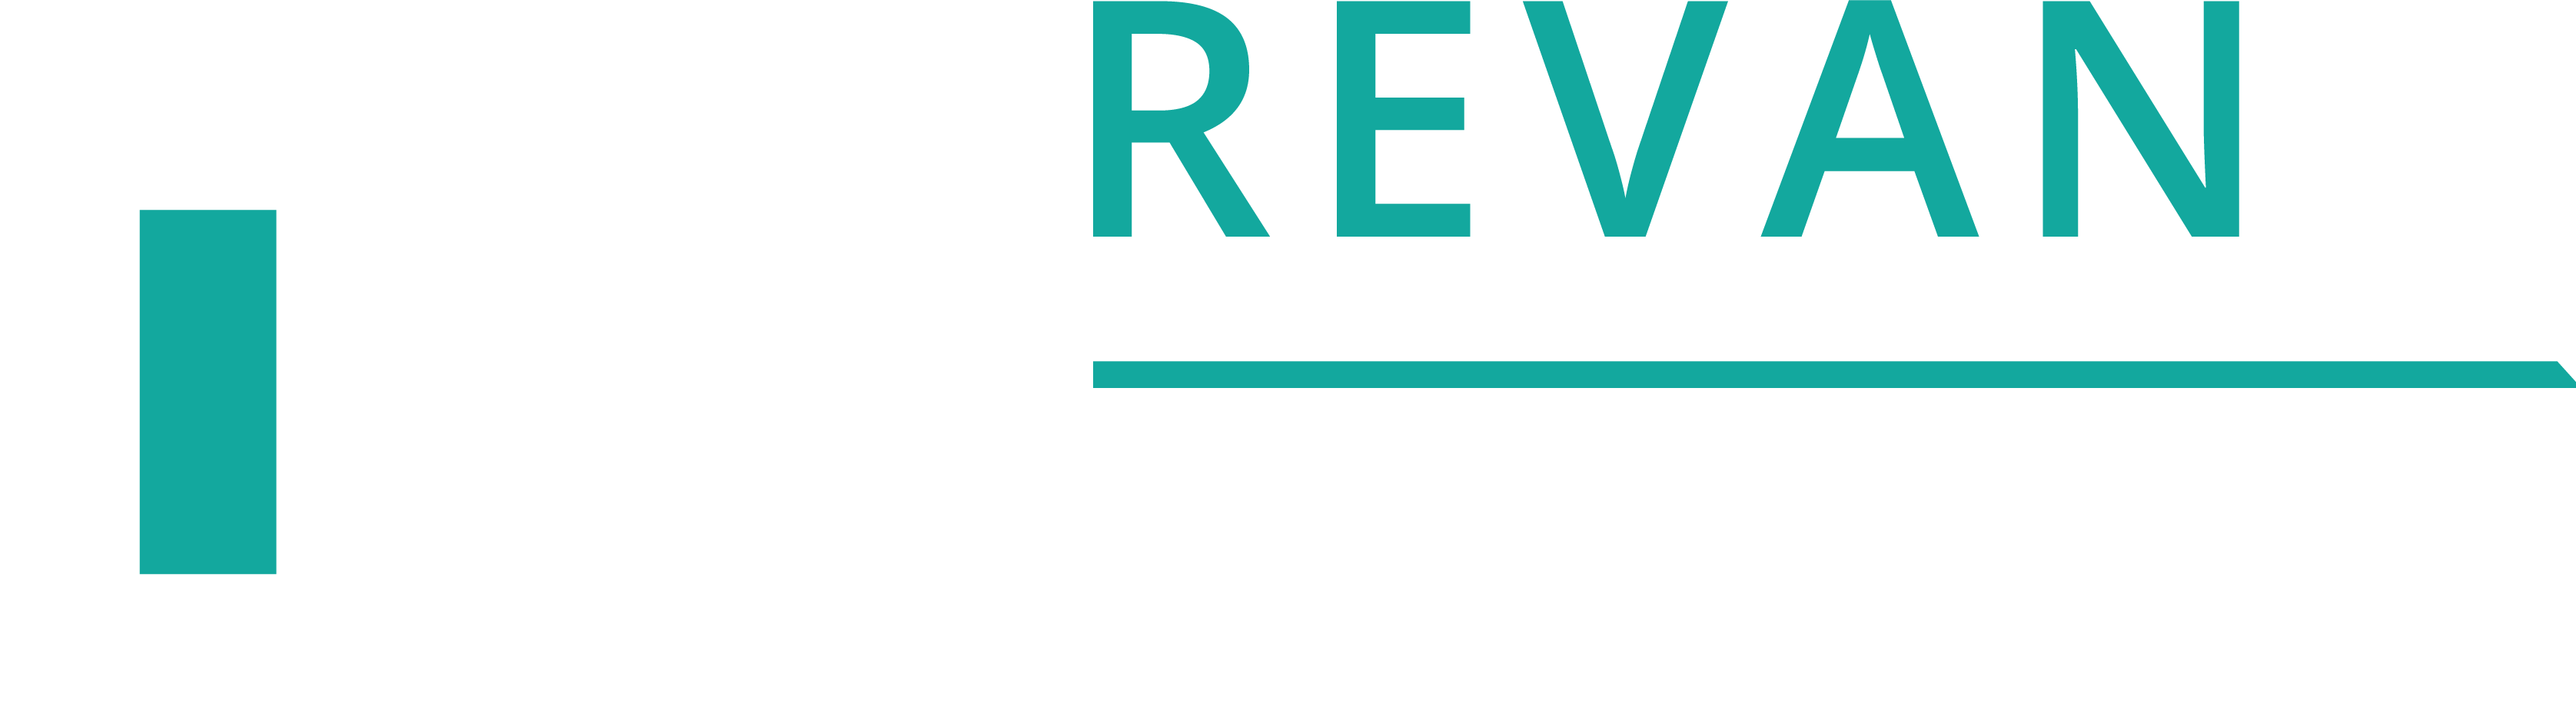 Revan Systems